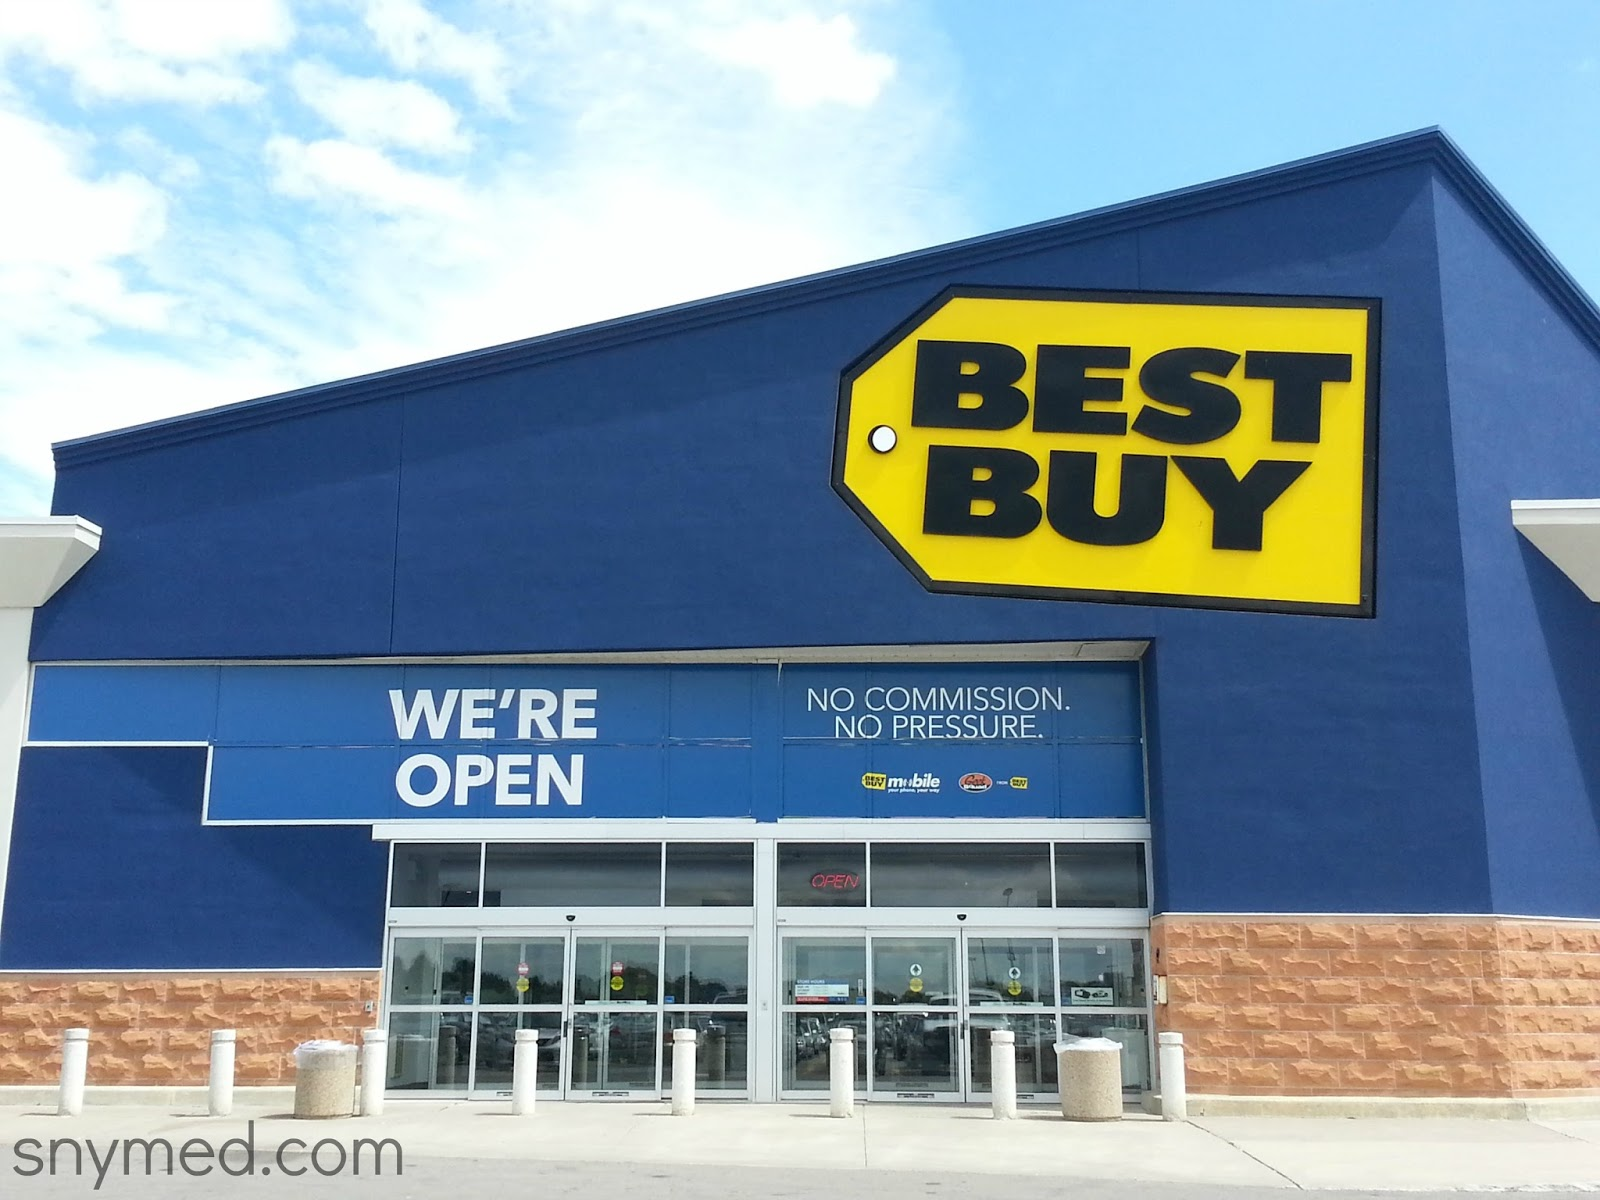 Find Best Buy store locations near you for computers, TVs, appliances, cell phones, video games, smart home tech, and Geek Squad services. Reserve online, pickup in-store.